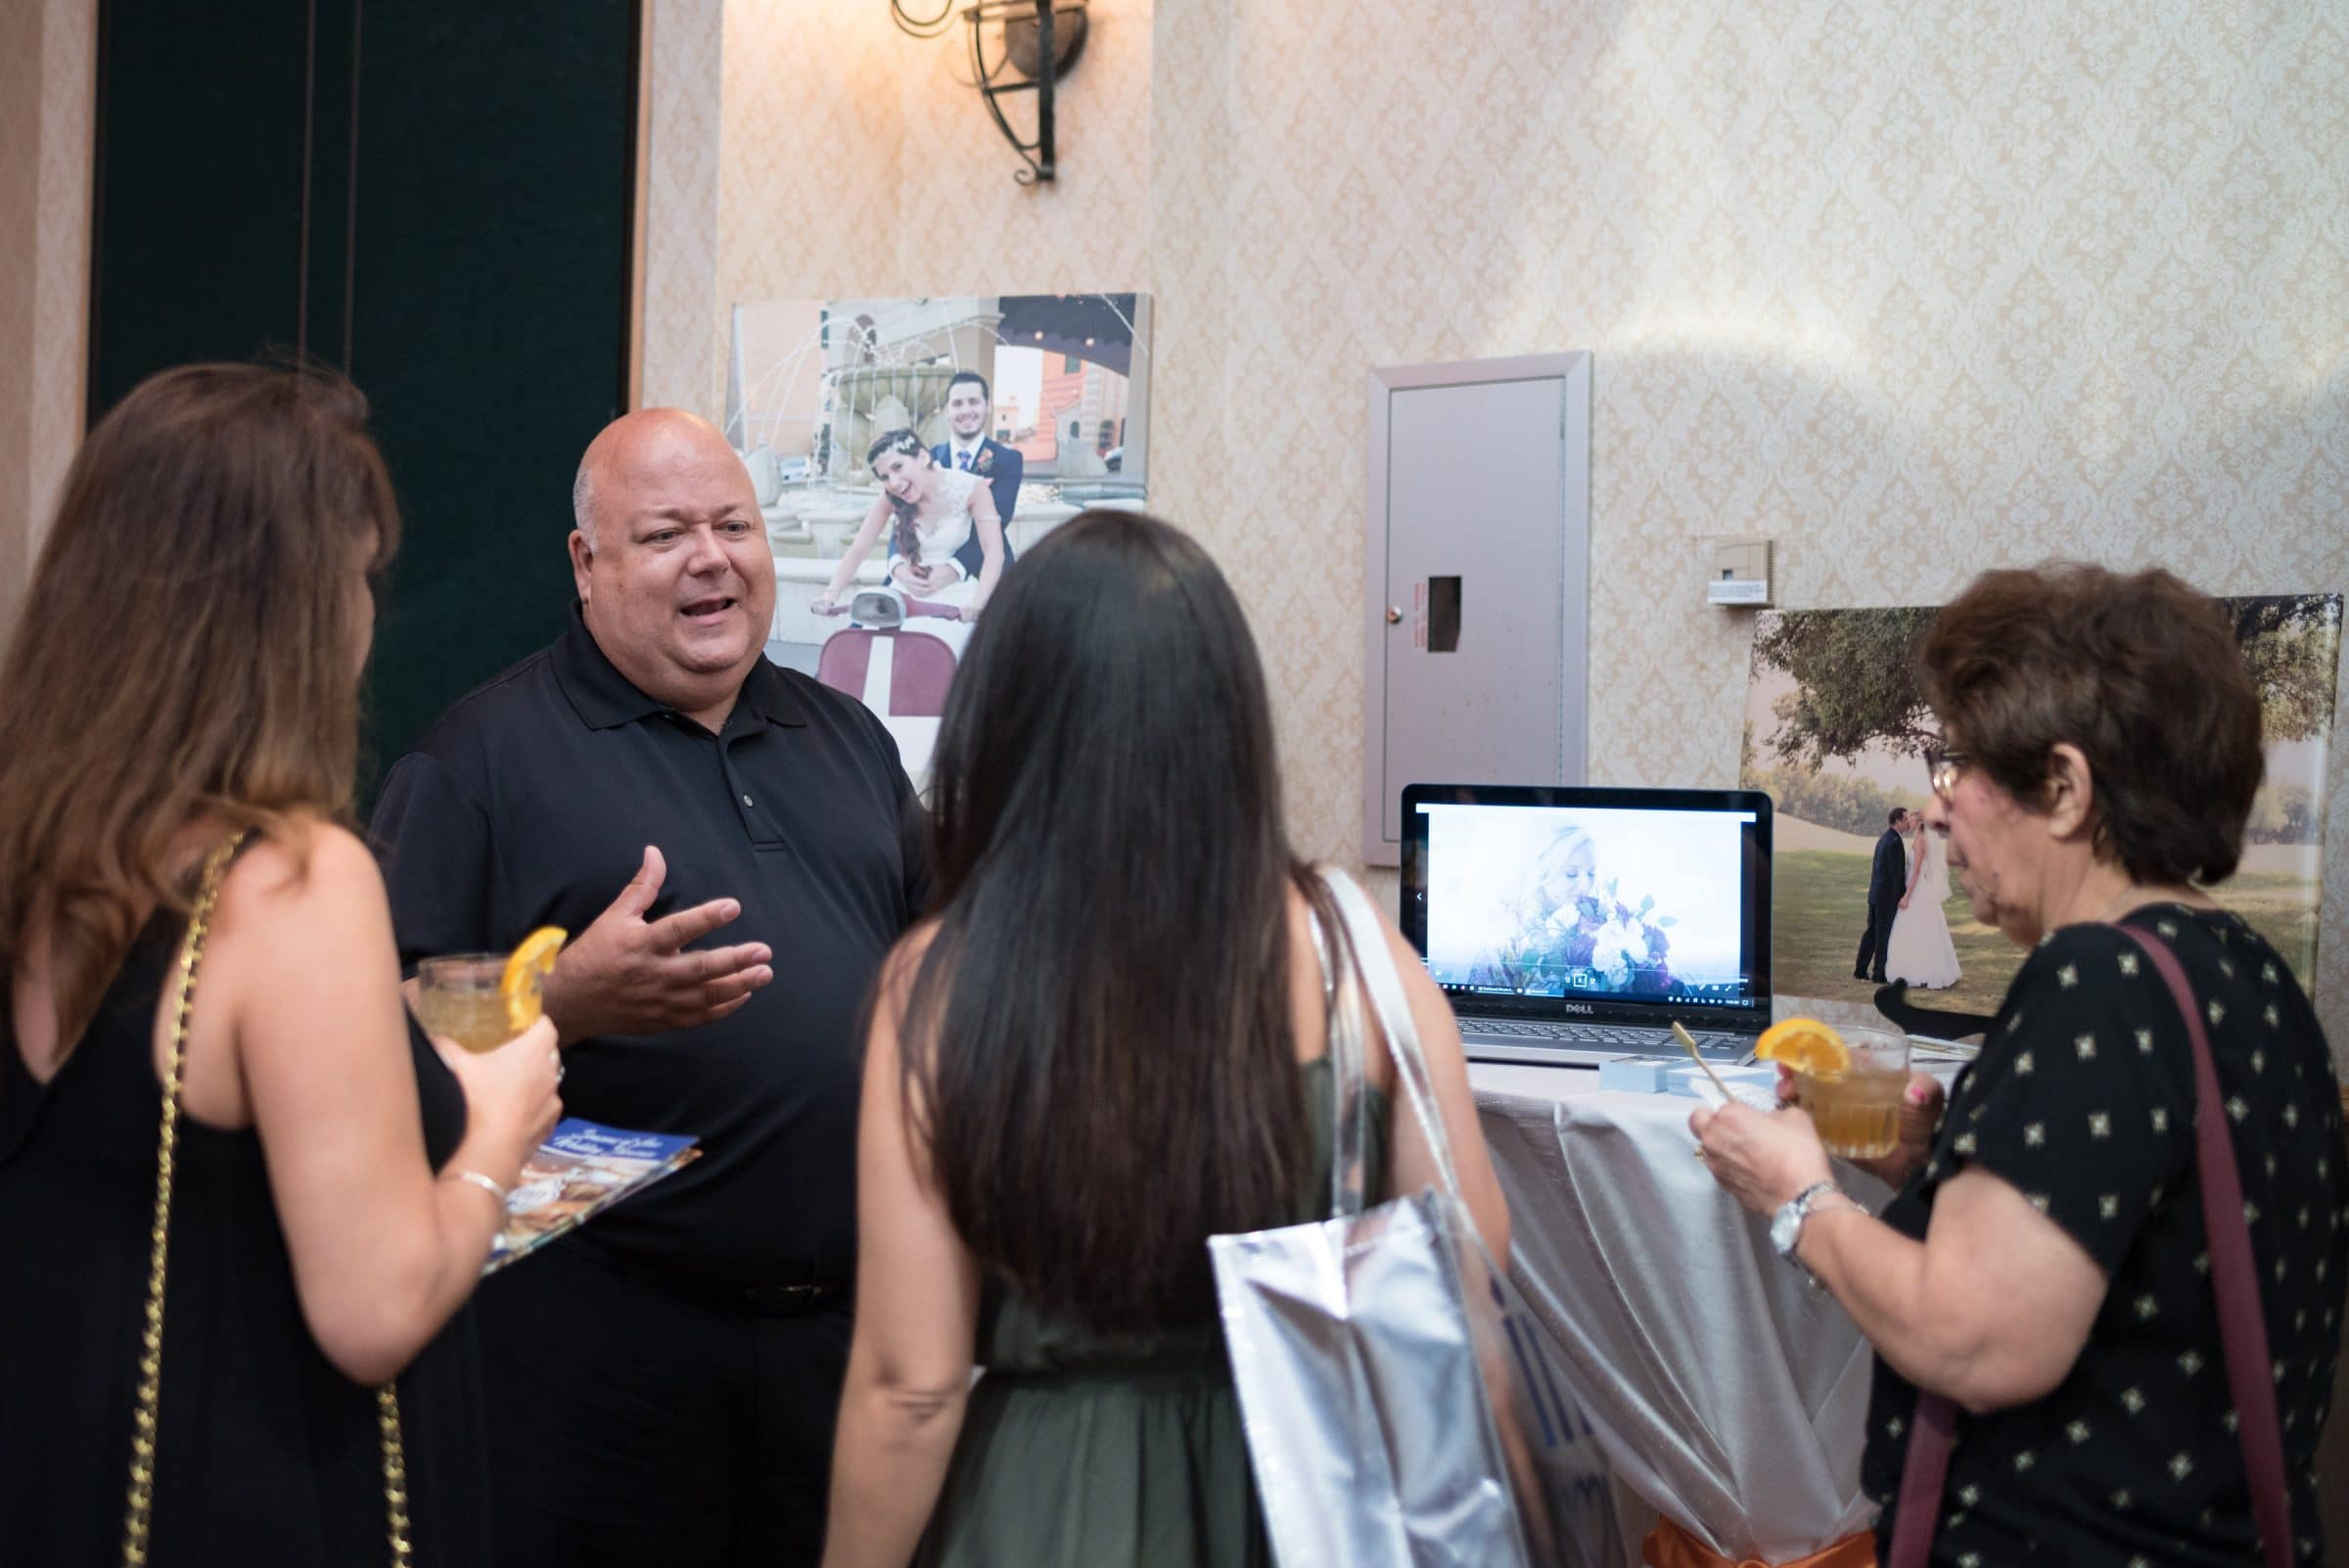 Male Wedding Photographer talking to brides at bridal show